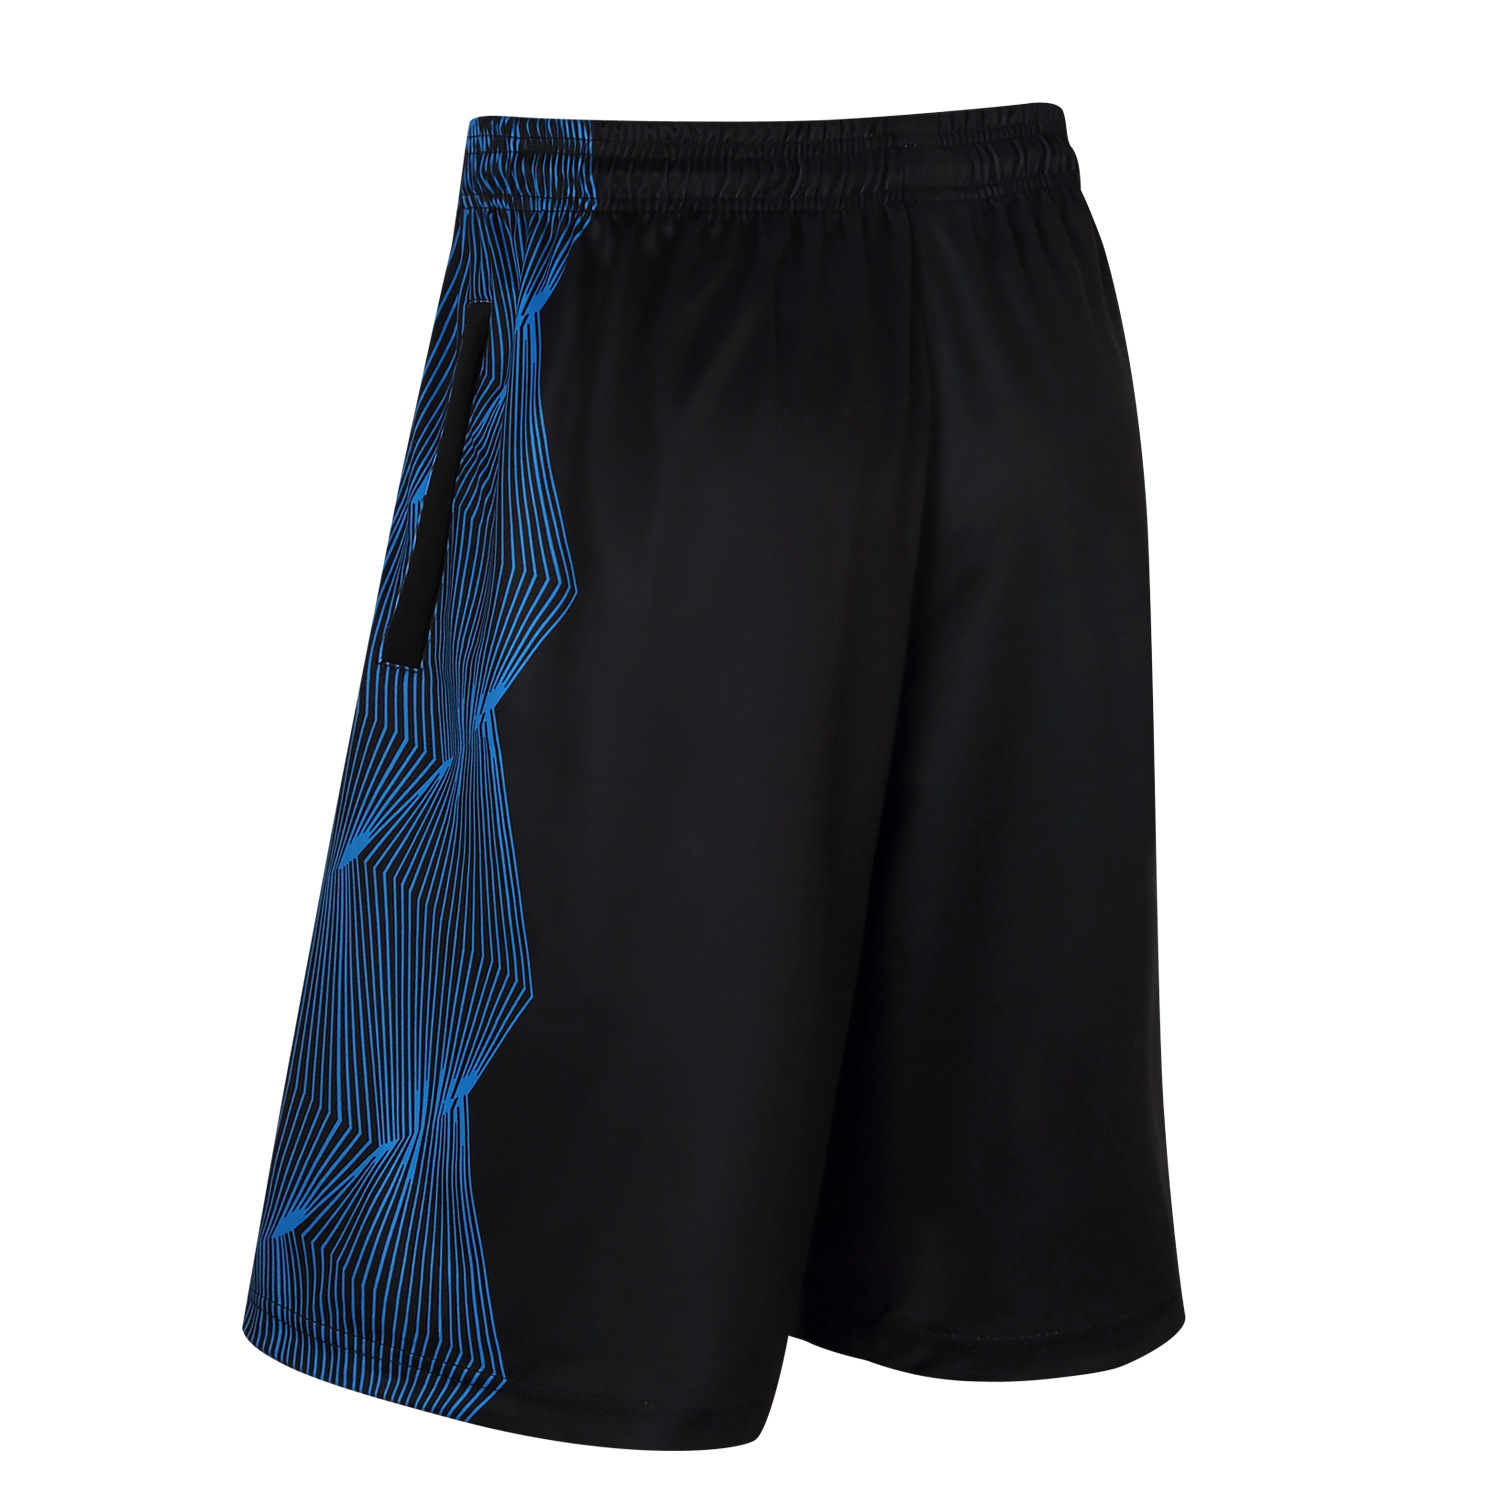 c33968cf030 Details about Basketball Shorts NBA Men's Shorts Breathable Quick-dry Kyrie  Irving pants Blue